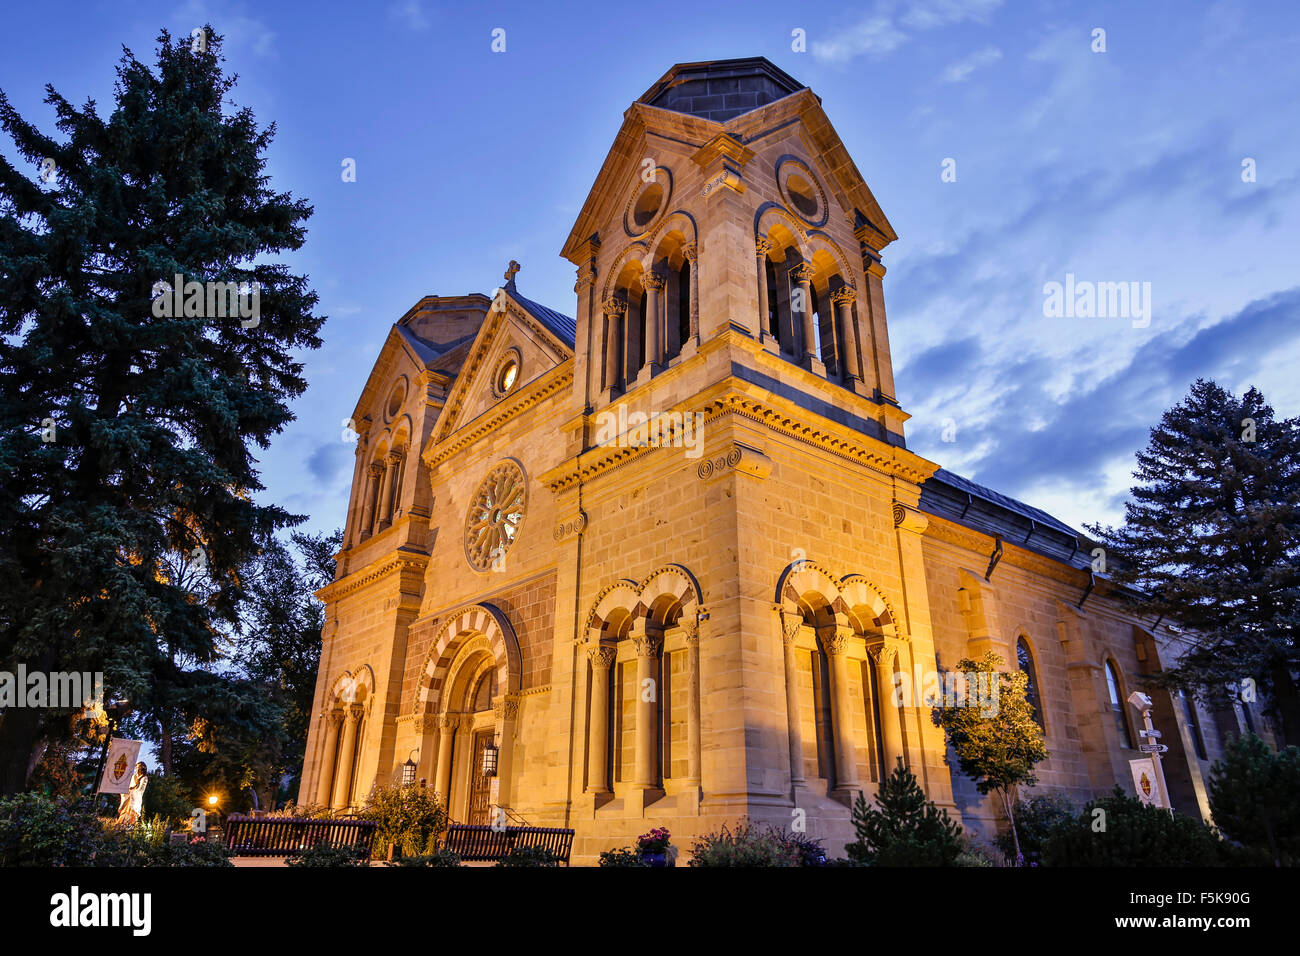 Cathedral Basilica of St. Francis of Assisi (Santa Fe Cathedral, 1884), Santa Fe, New Mexico USA - Stock Image